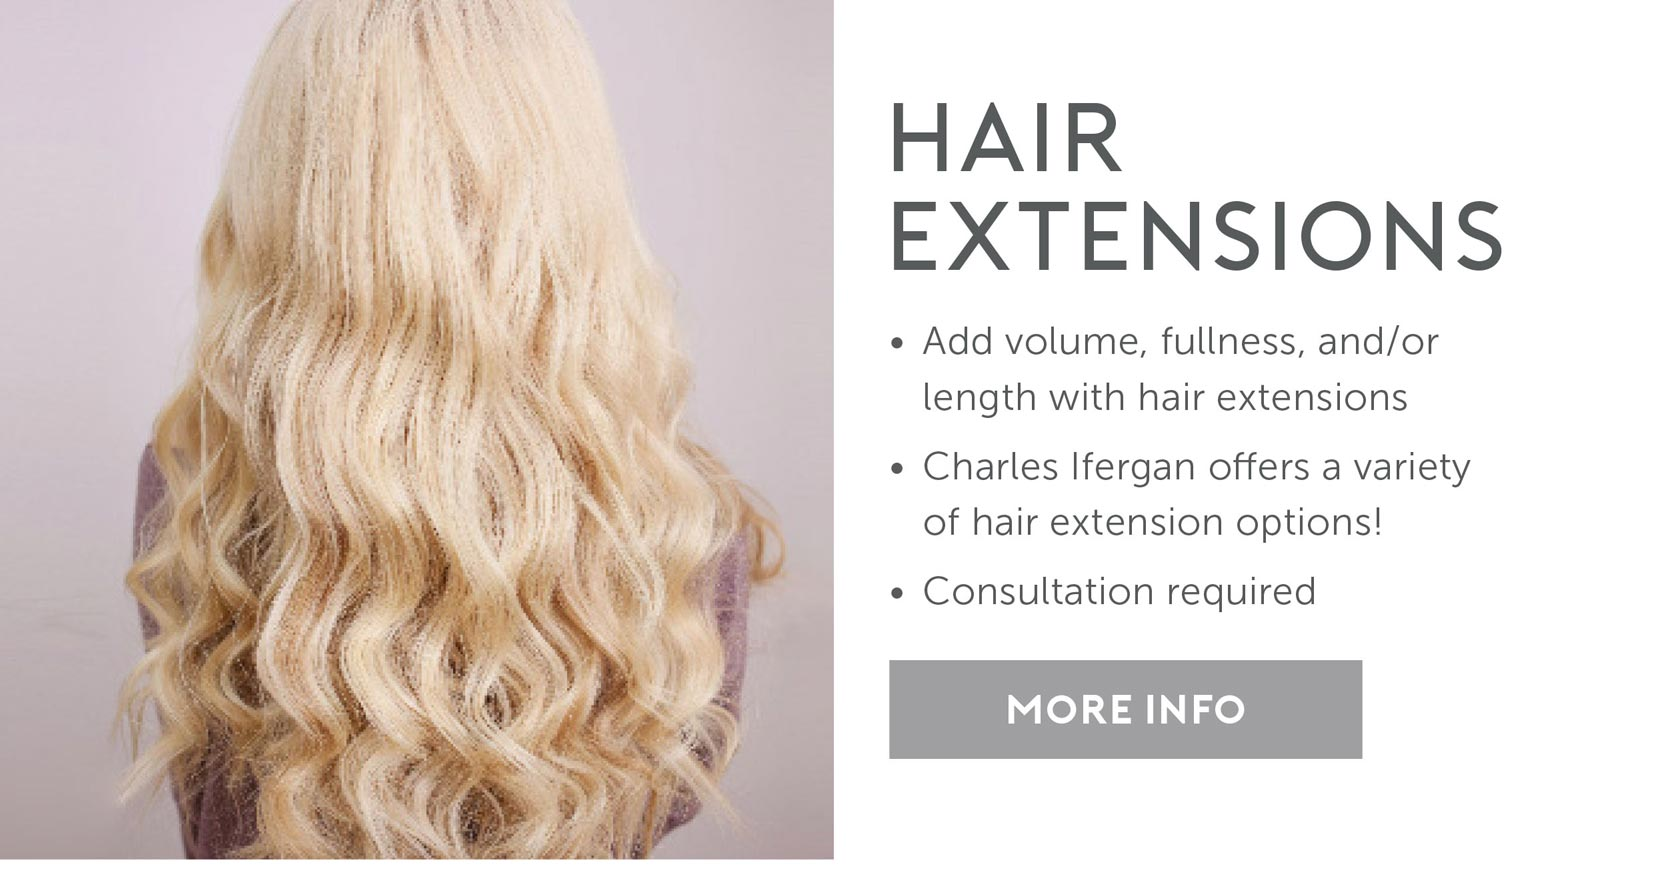 Hair Extensions: Add volume, fullness and/or legnth with hair extensions. Charles Ifergan offers a variety of hair extension options! Consultation required. More info.